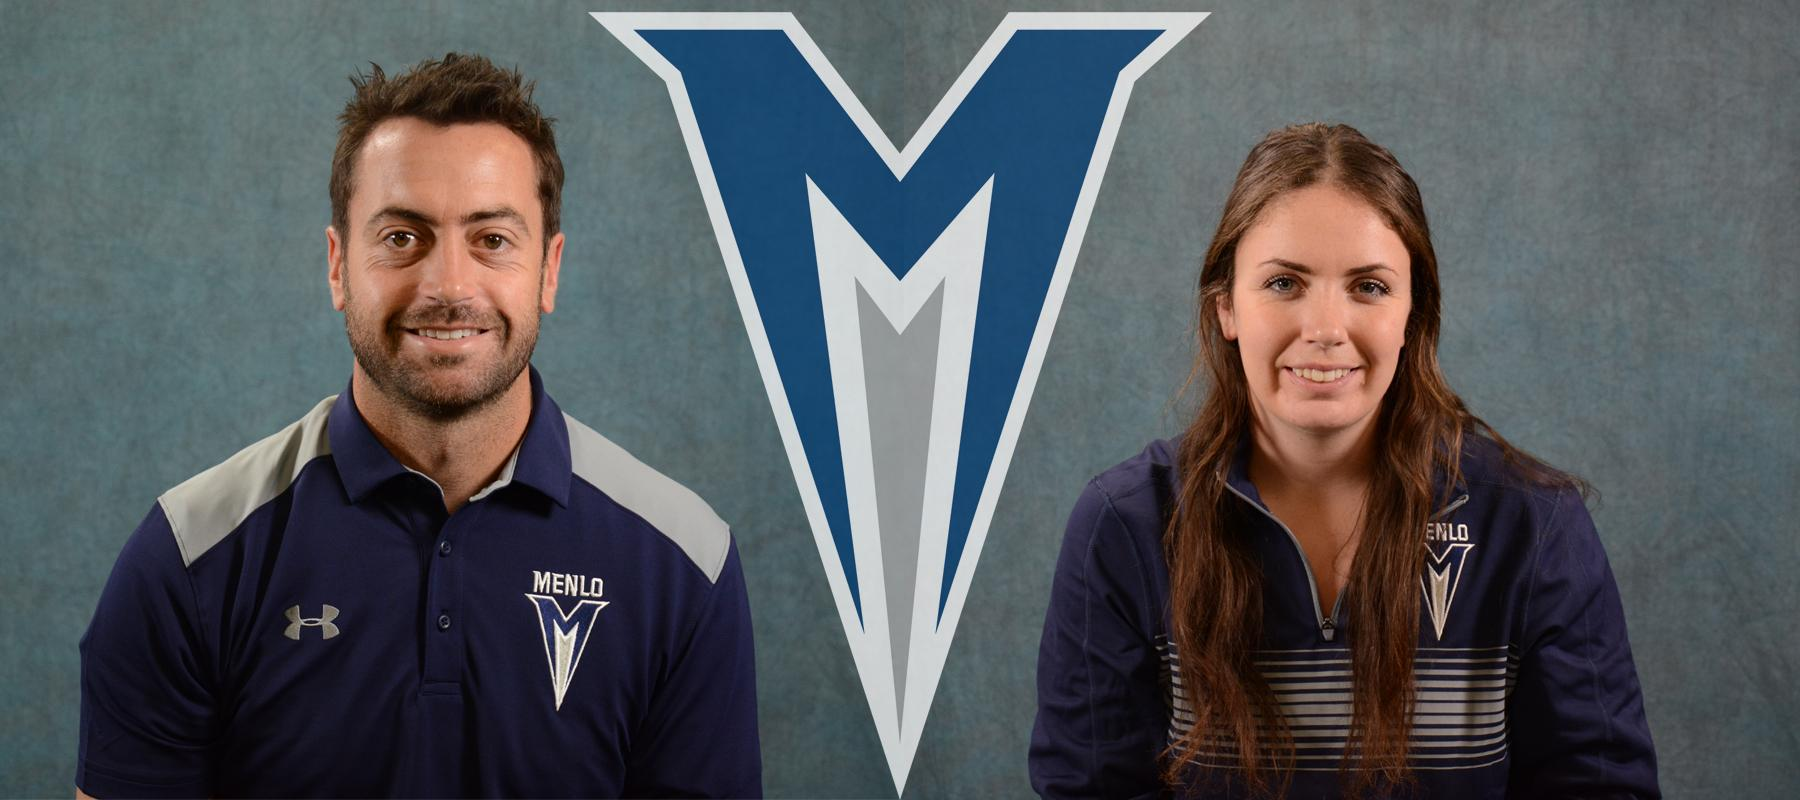 Kyle Hagenburger and Allison Hadidian added to WSOC Coaching Staff